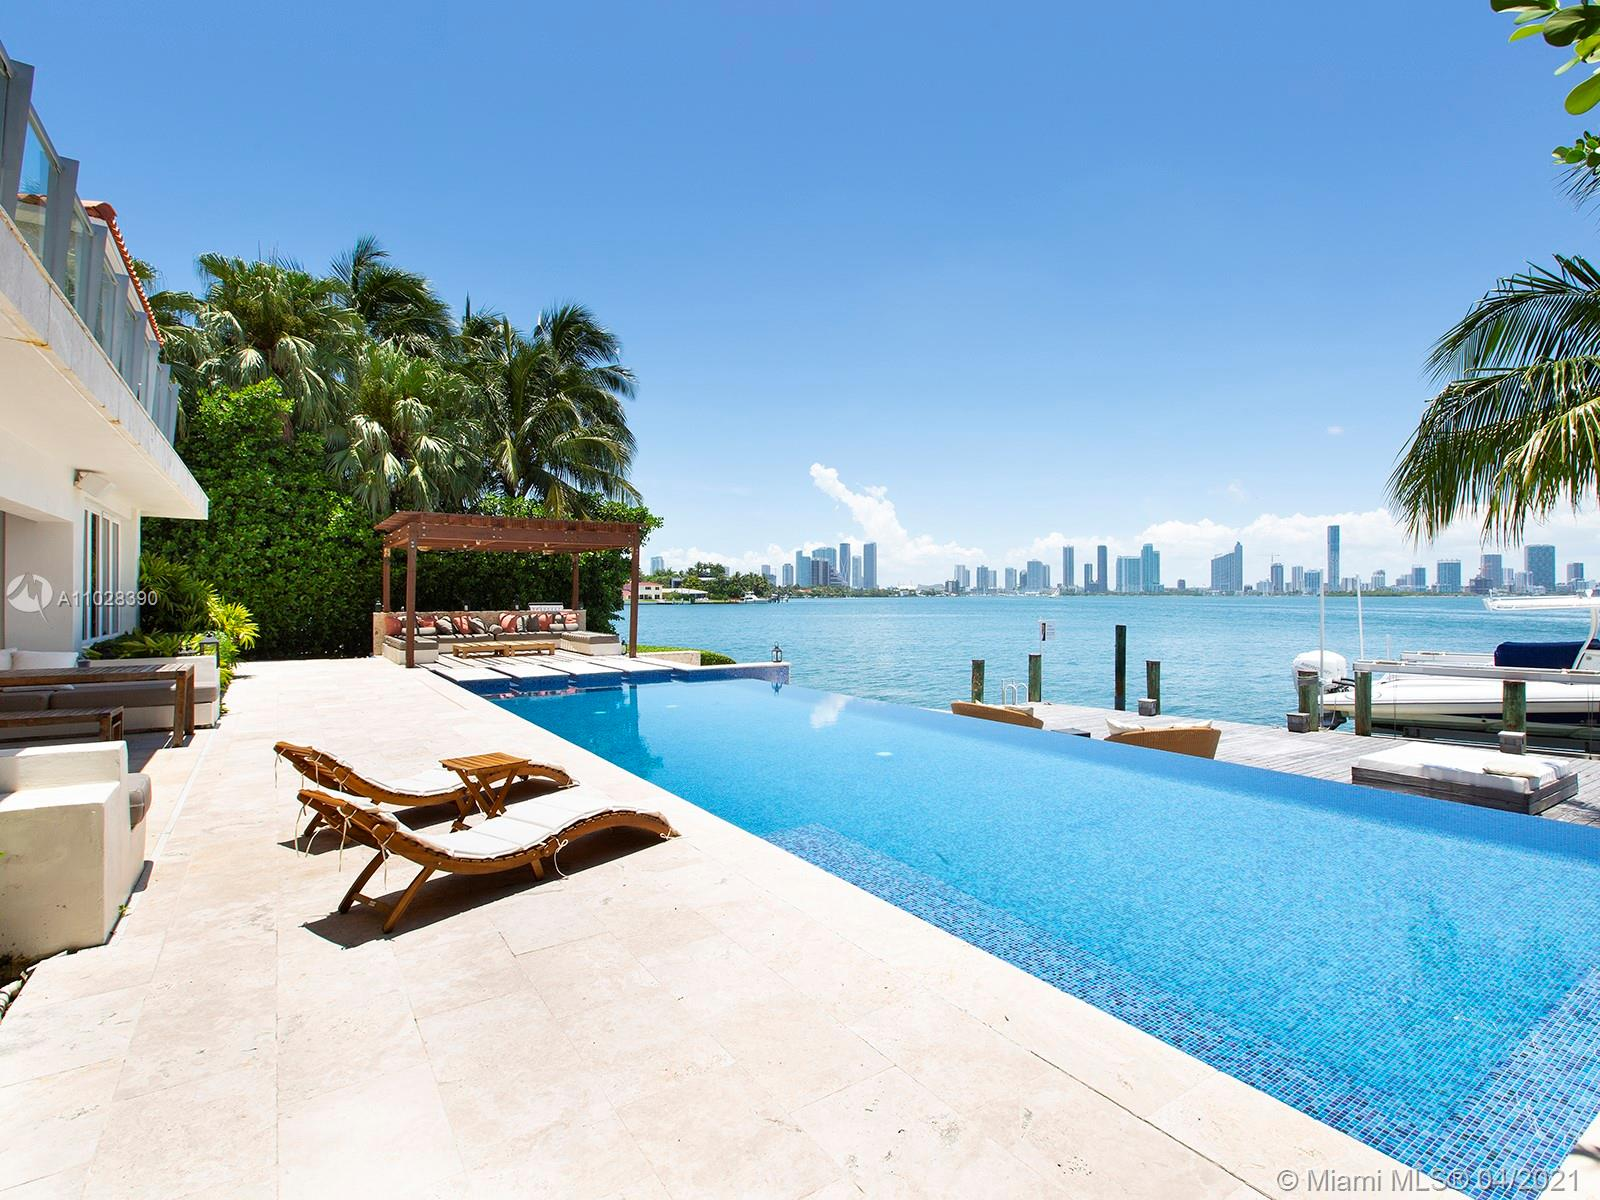 Venetian Islands #* - 820 W Dilido Dr #*, Miami Beach, FL 33139